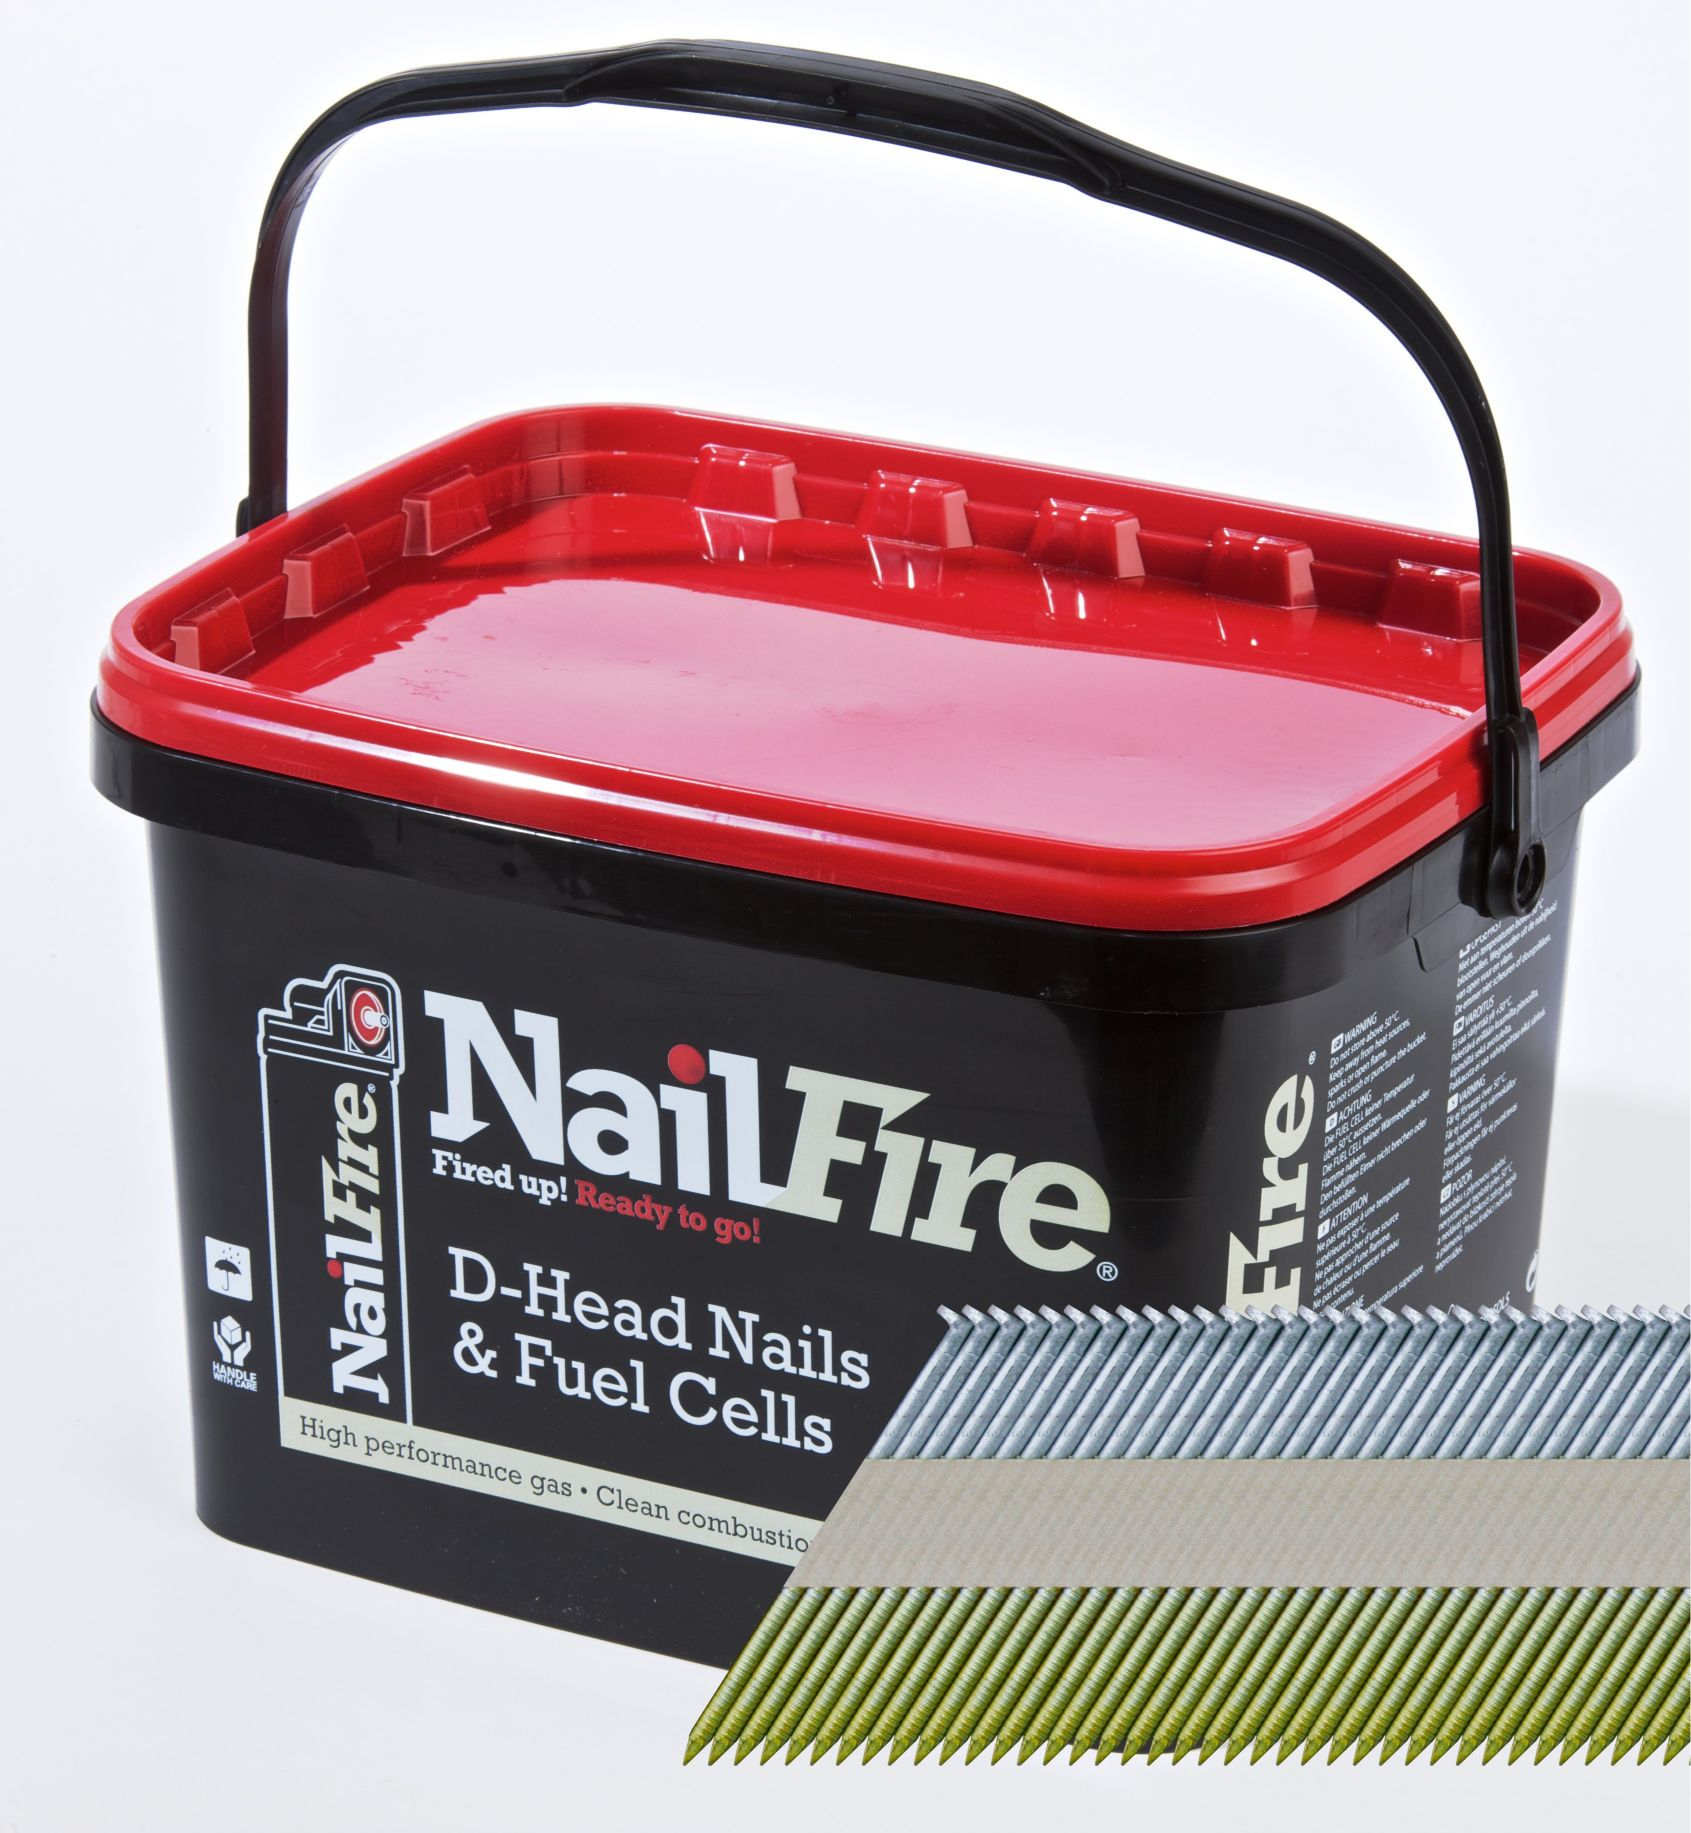 NAILFIRE 1ST FIX E/GALV SMOOTH NAILS & GAS 90MM (BOX OF 2000)